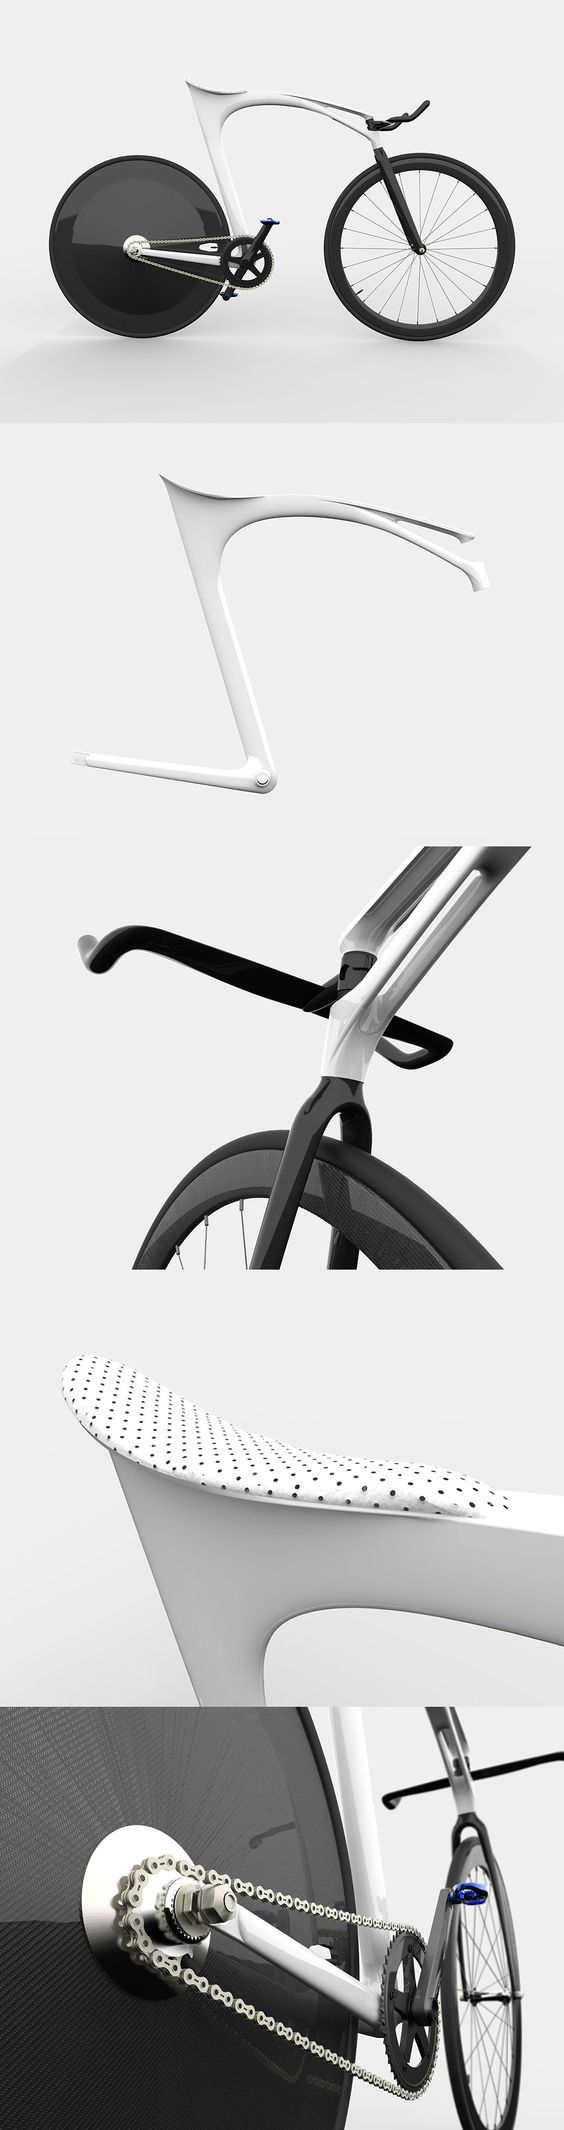 FAR-OUT FIXIE... Read more at Yanko Design: